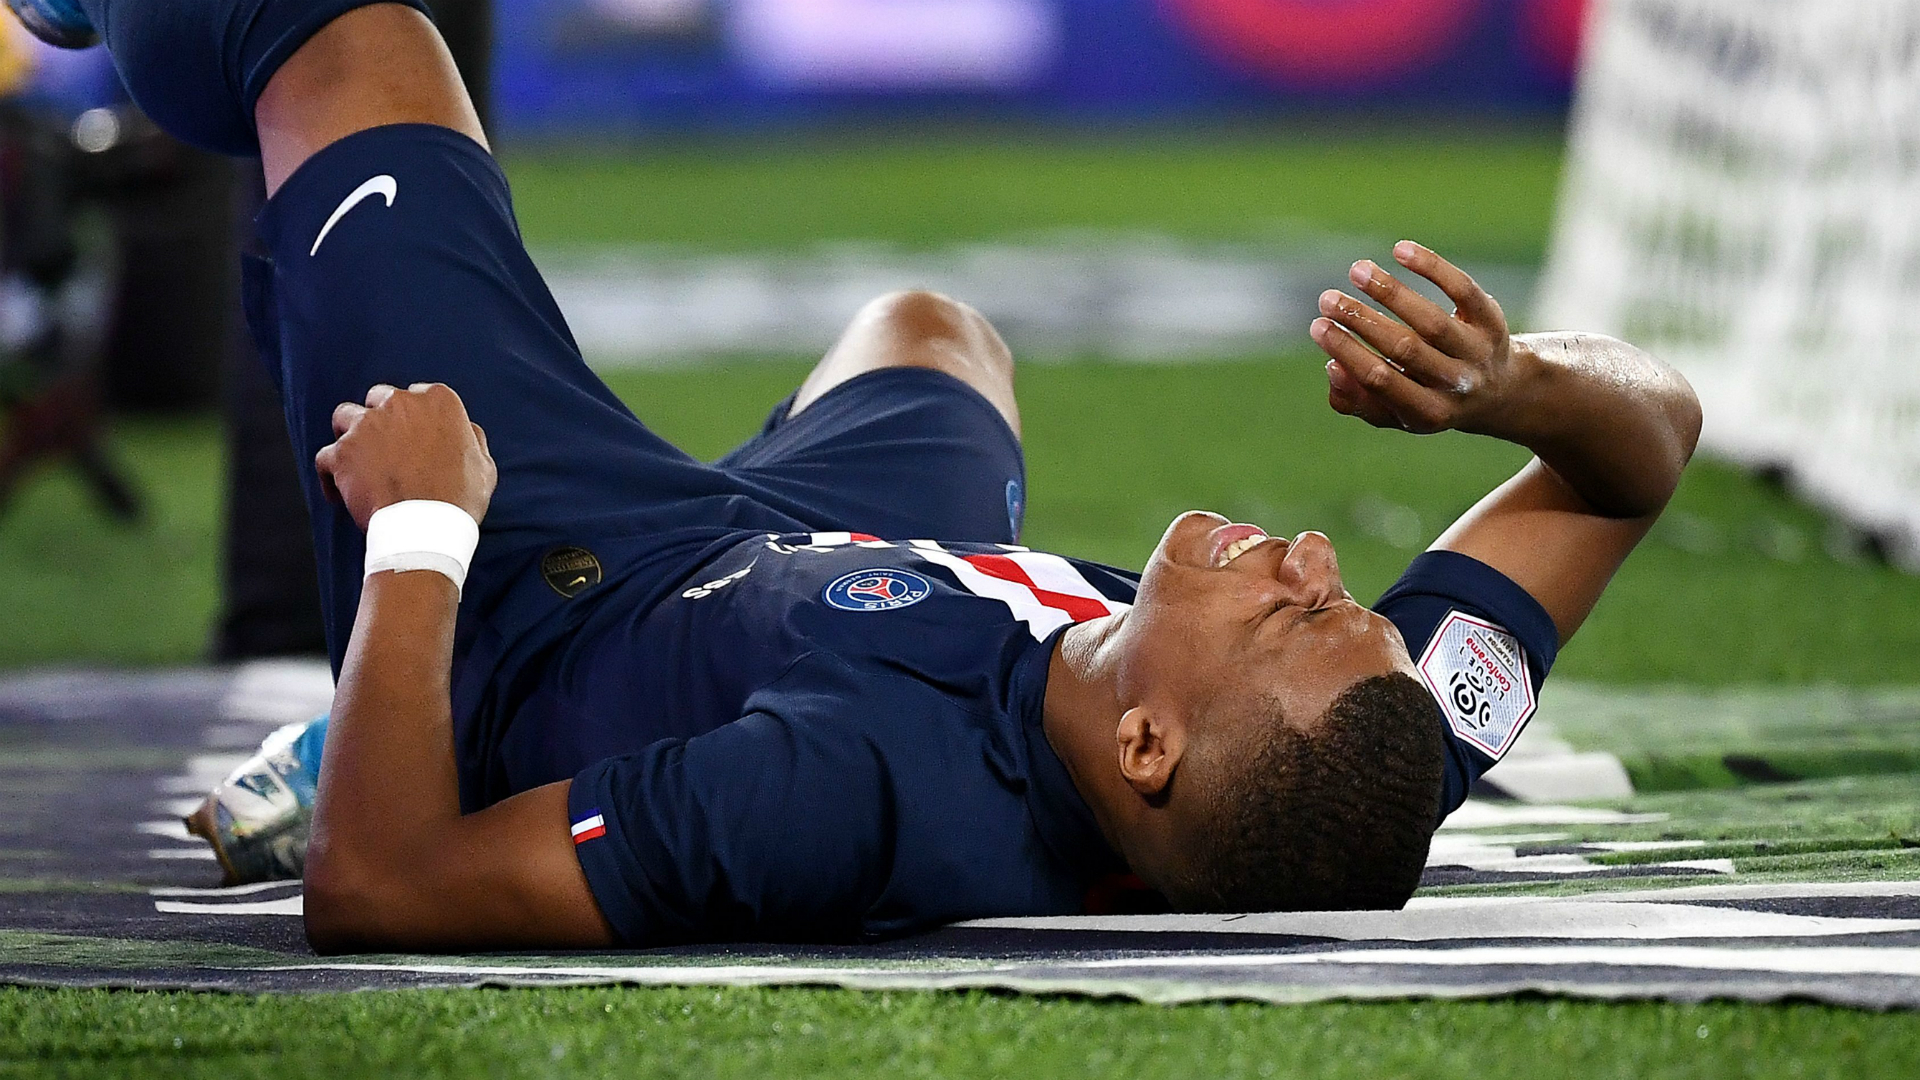 Paris Saint-Germain 4-0 Toulouse: Mbappe and Cavani injured in easy home win